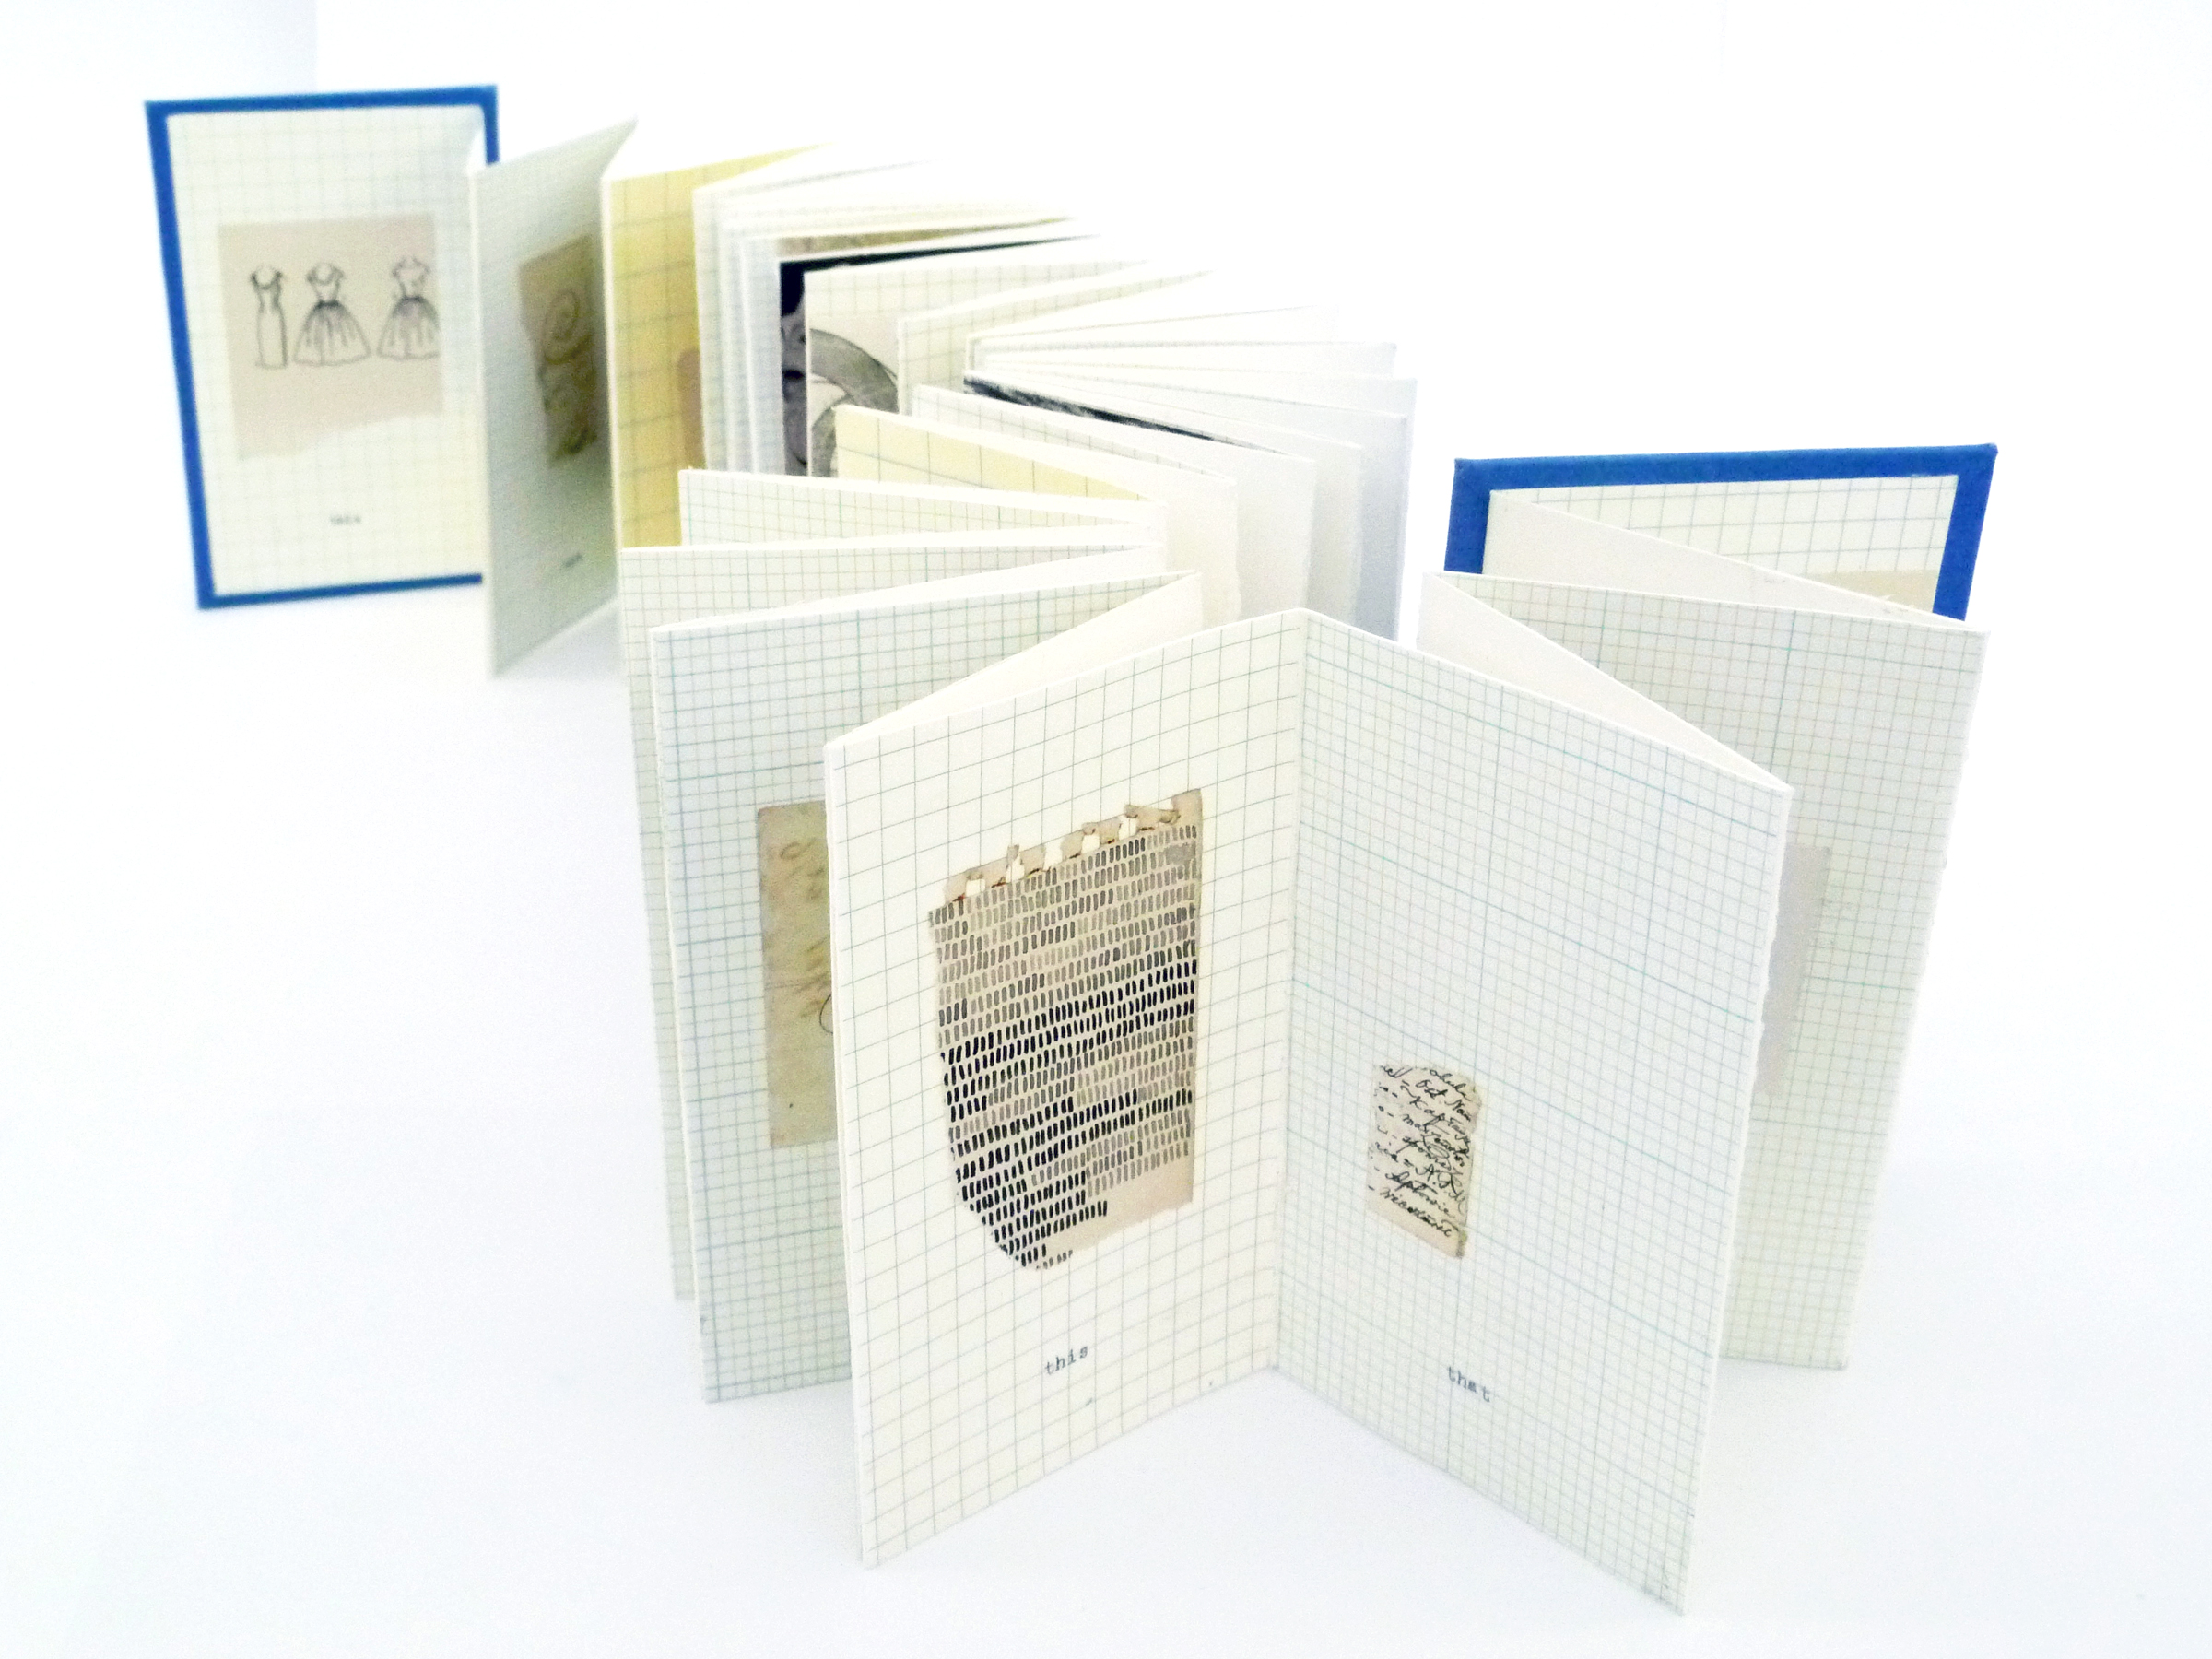 accordian fold artist book made with white graph paper